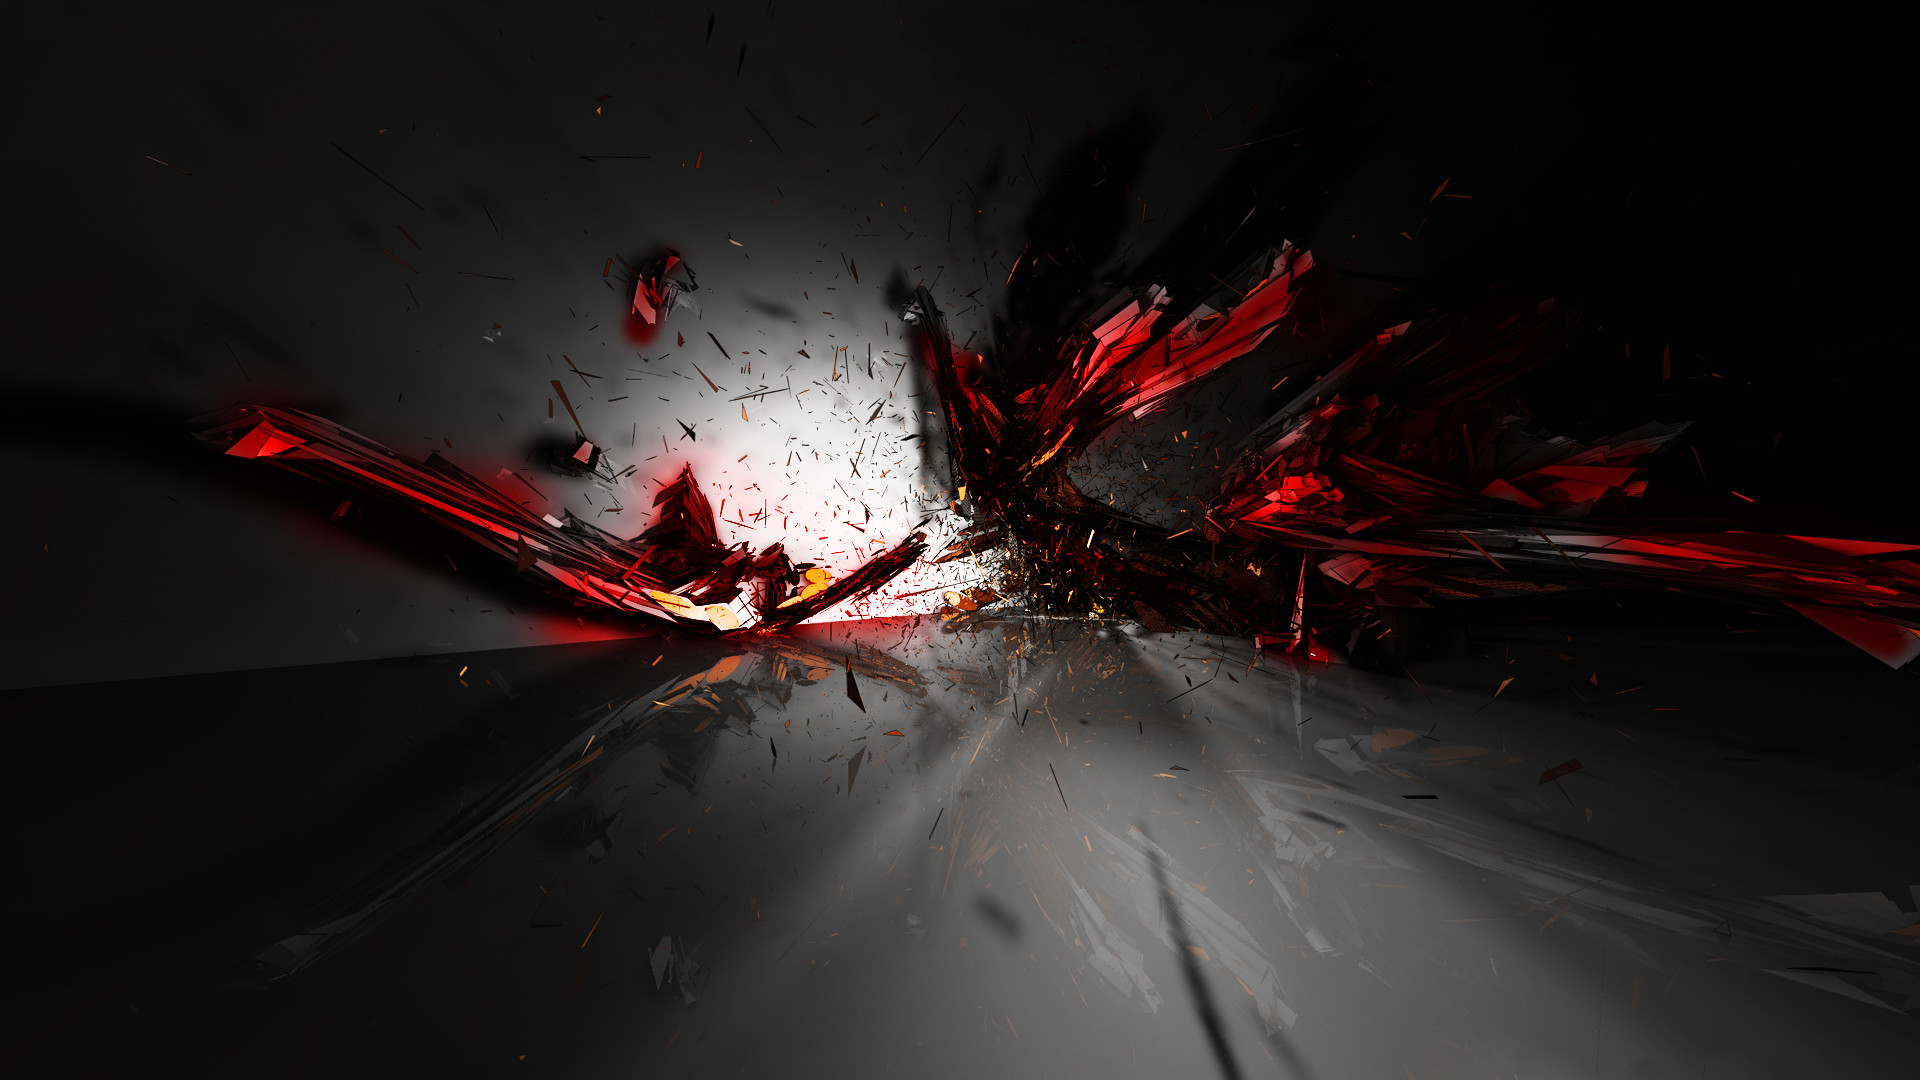 1920x1080 red abstract 3d design wallpaper source http wallpaperstube com red .